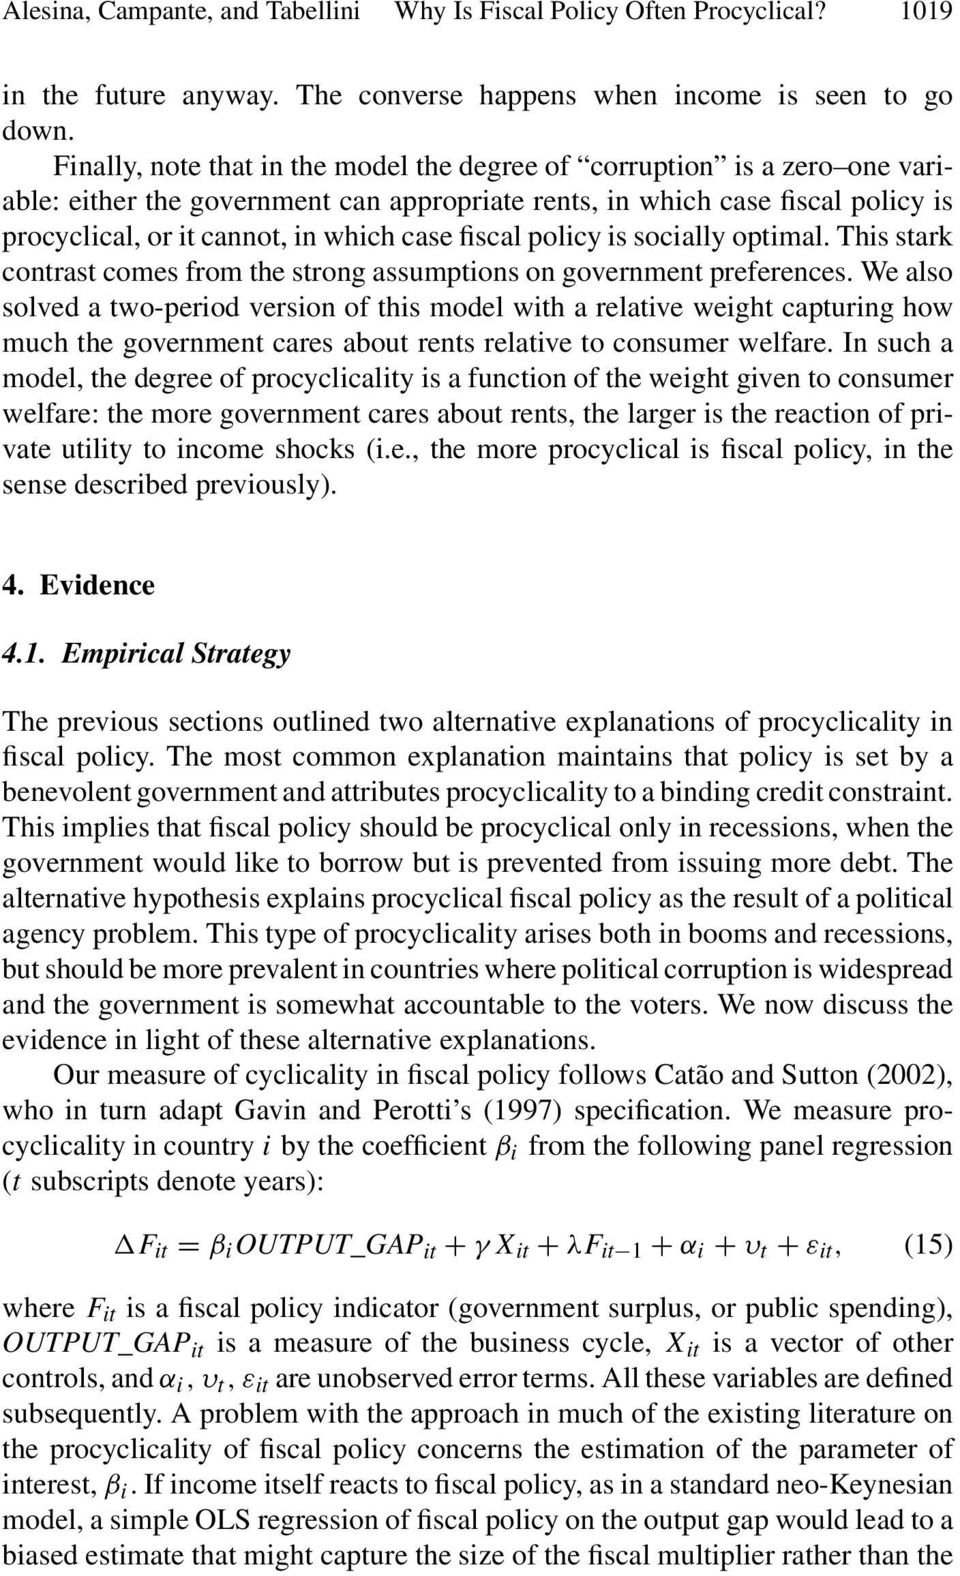 fiscal policy is socially optimal. This stark contrast comes from the strong assumptions on government preferences.